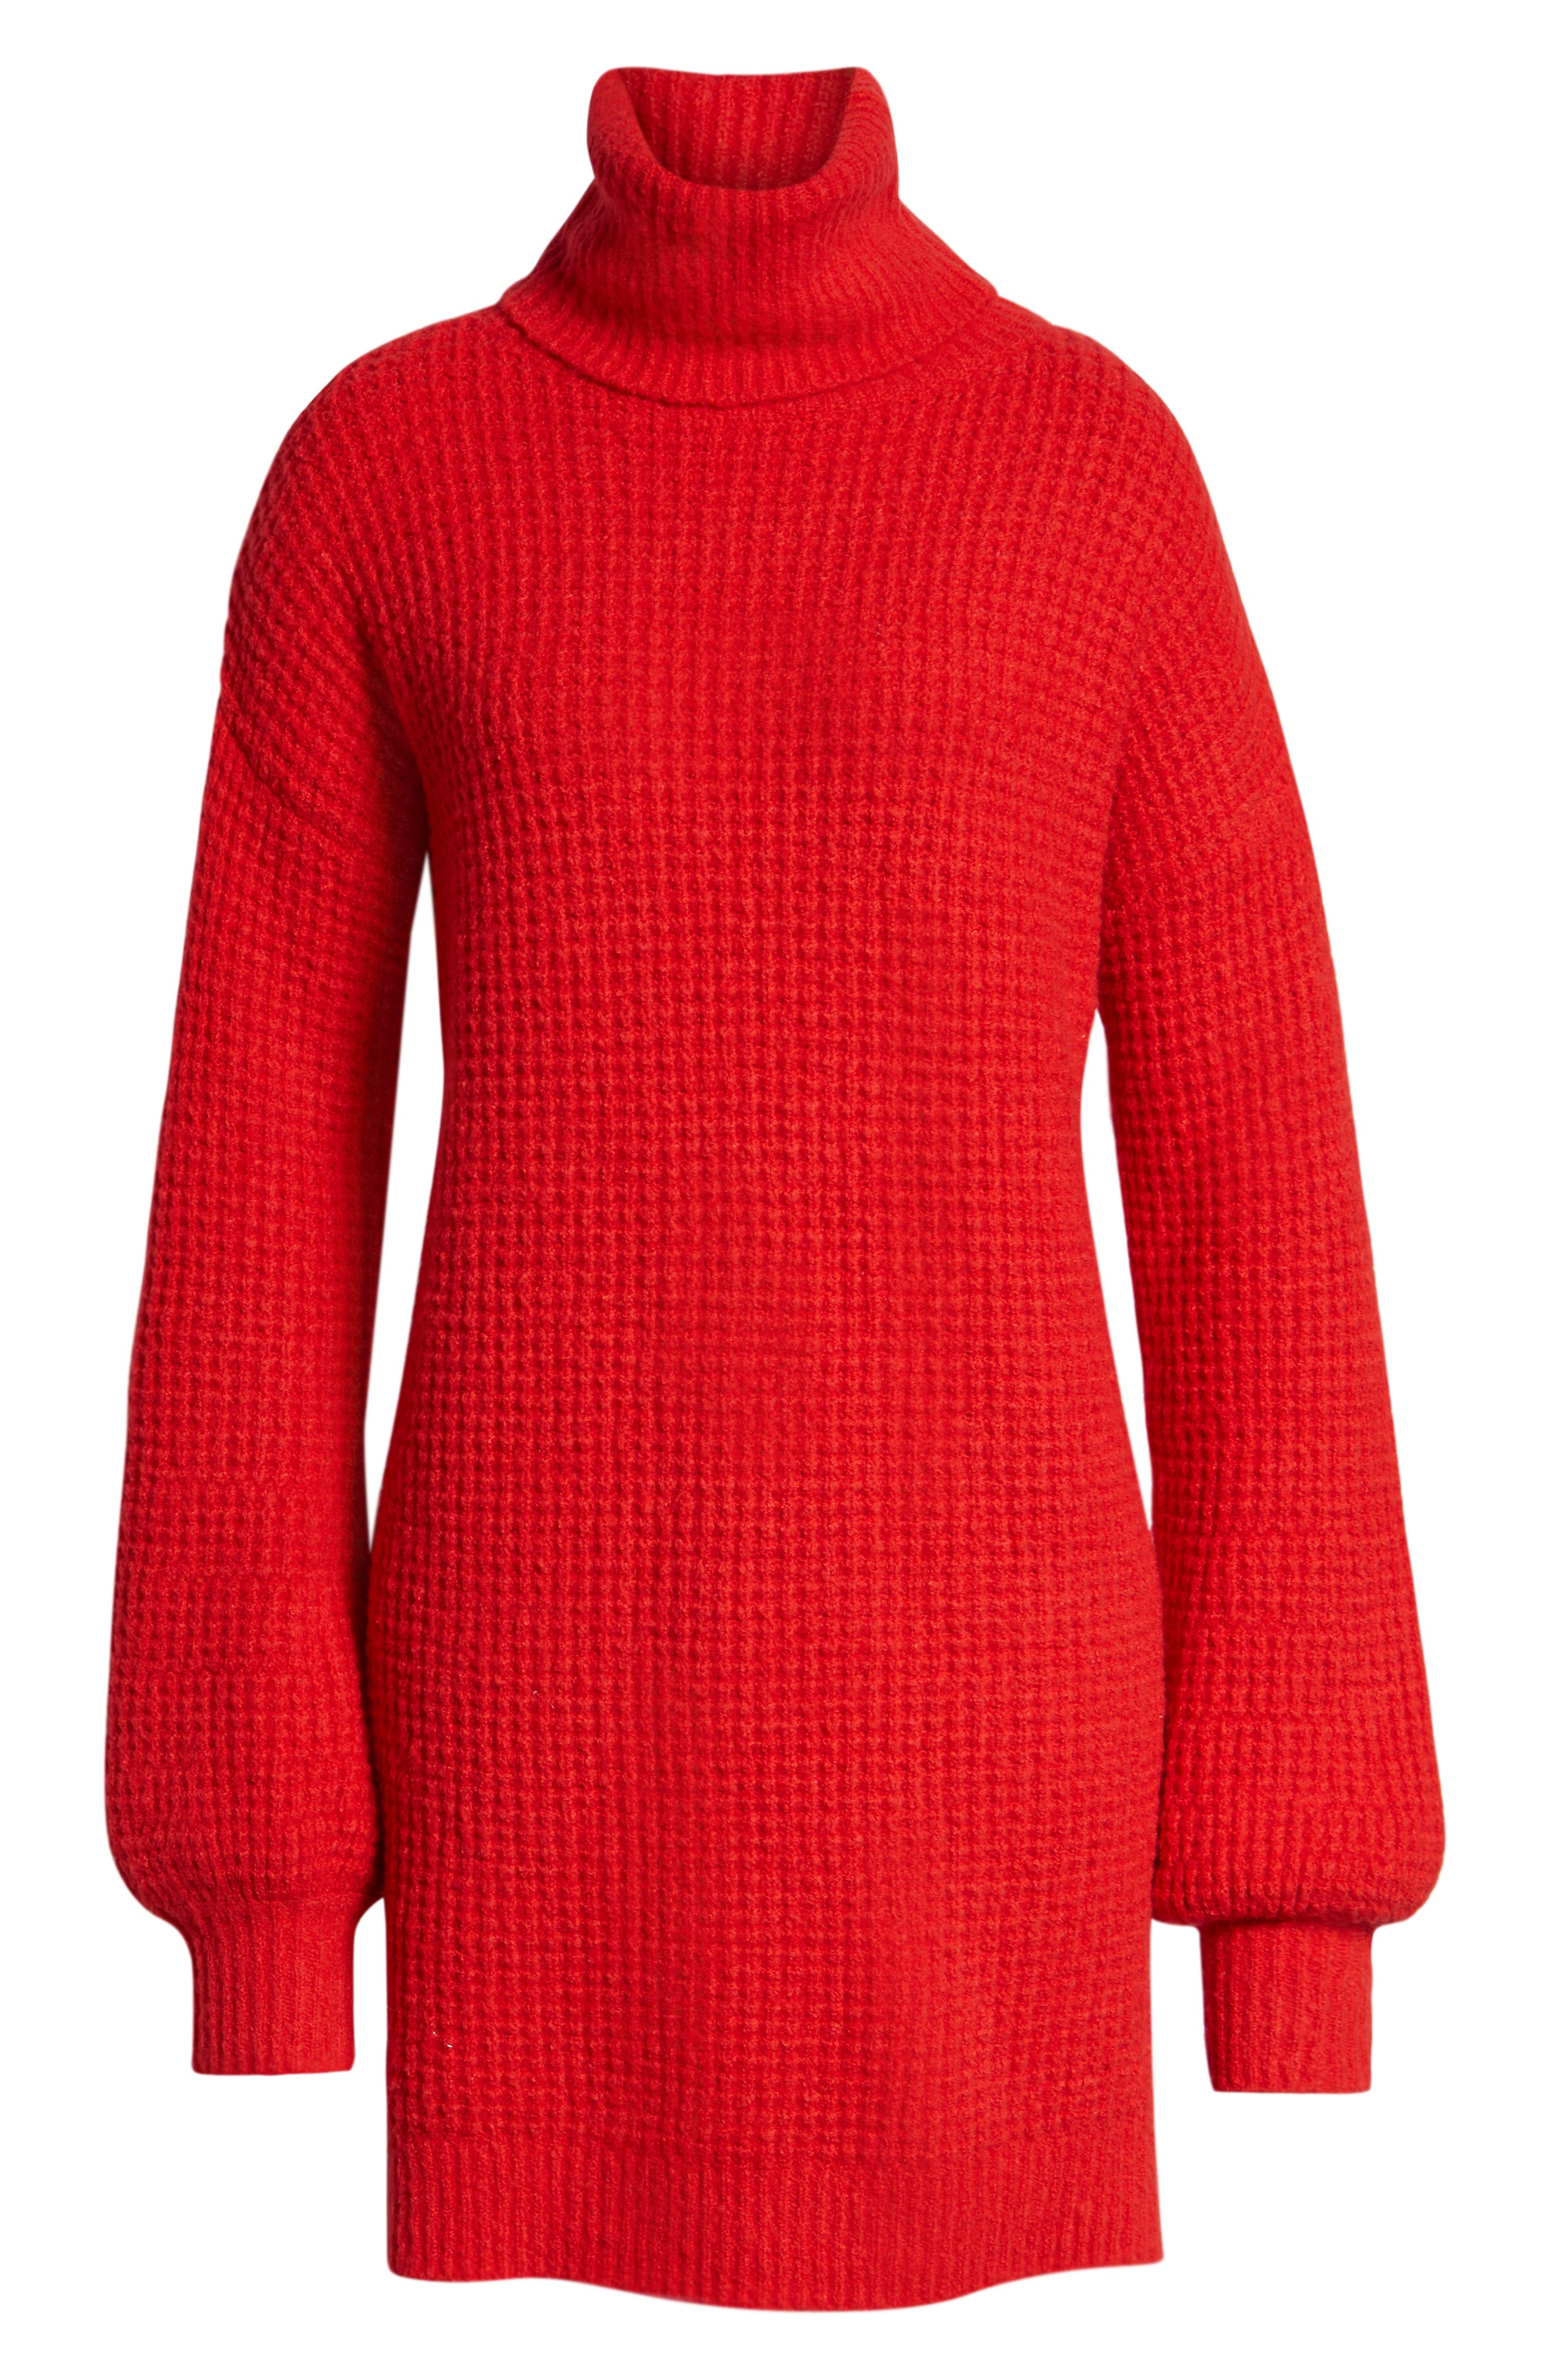 Holly Red Sweater Dress,                             Alternate thumbnail 8, color,                             600